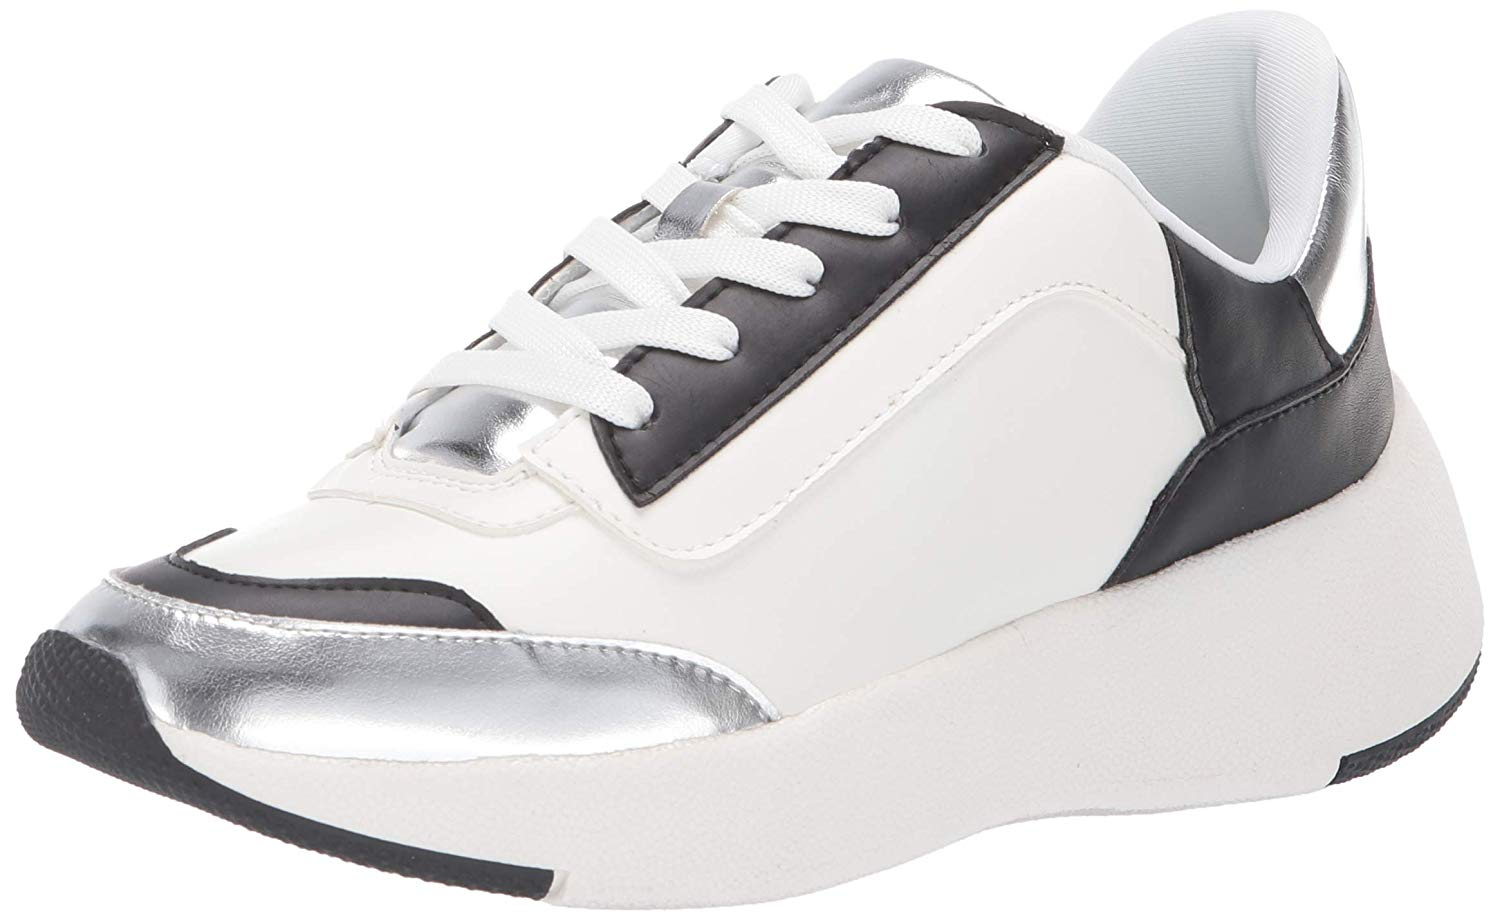 Details about Circus by Sam Edelman Women's Georgina Sneaker, White, Size 8.5 9D1L